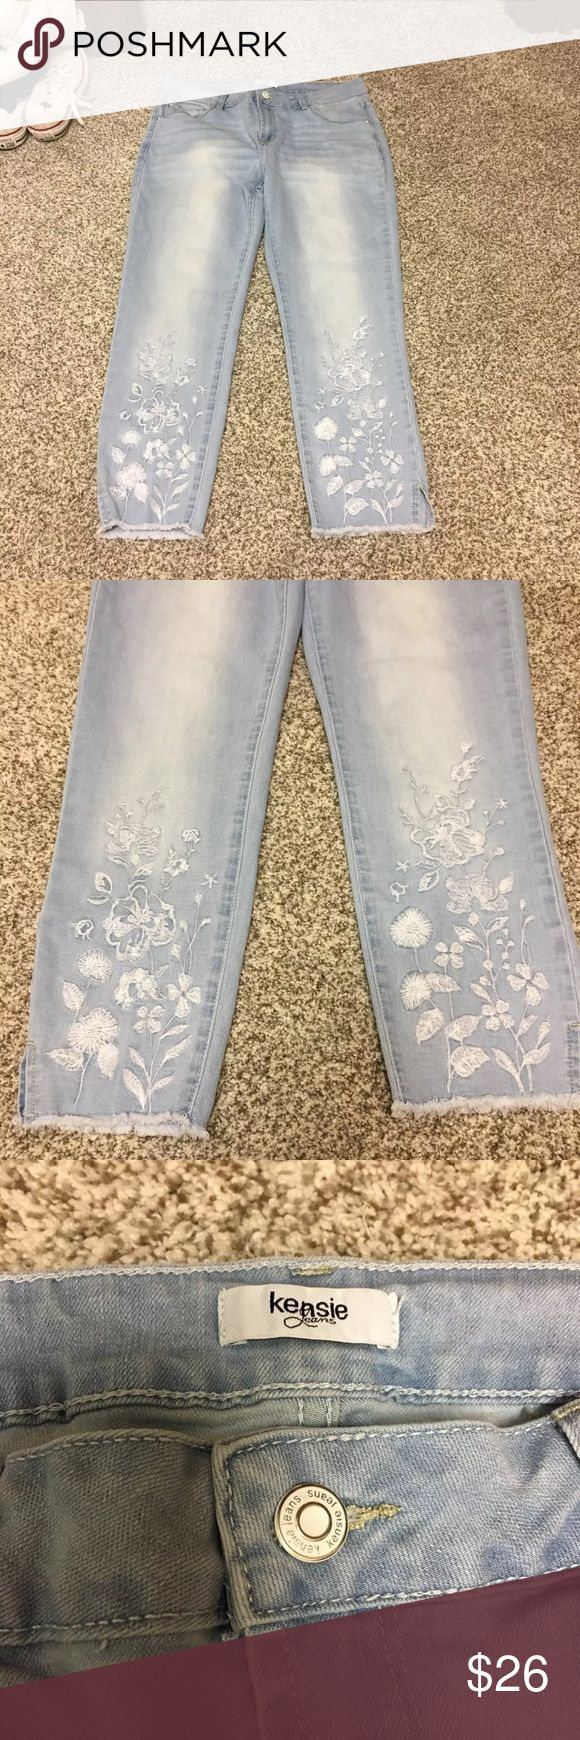 Kensie jeans Kensie jeans size 10. Lighter wash. Floral design at the bottom as shown in the second pic. Worn once. Paid $75 Kensie Jeans